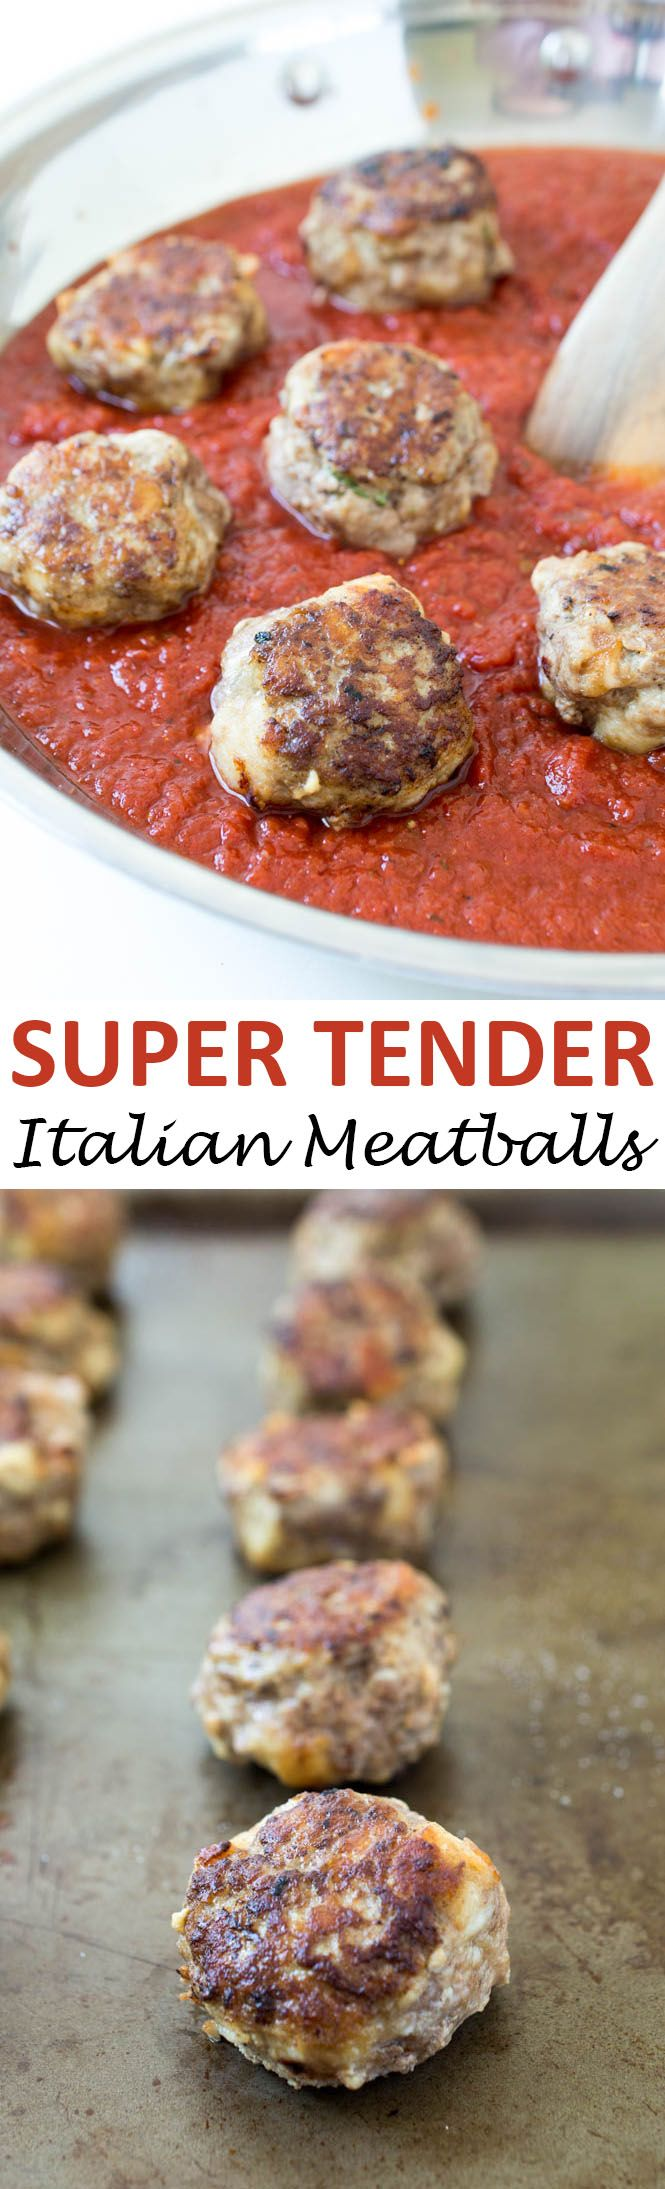 Super Tender Italian Meatballs. Loaded with Parmesan cheese, fresh parsley and garlic. They melt in your mouth and are incredibly tender. Takes less than 30 minutes to make! | chefsavvy.com #recipe #meatballs #Italian